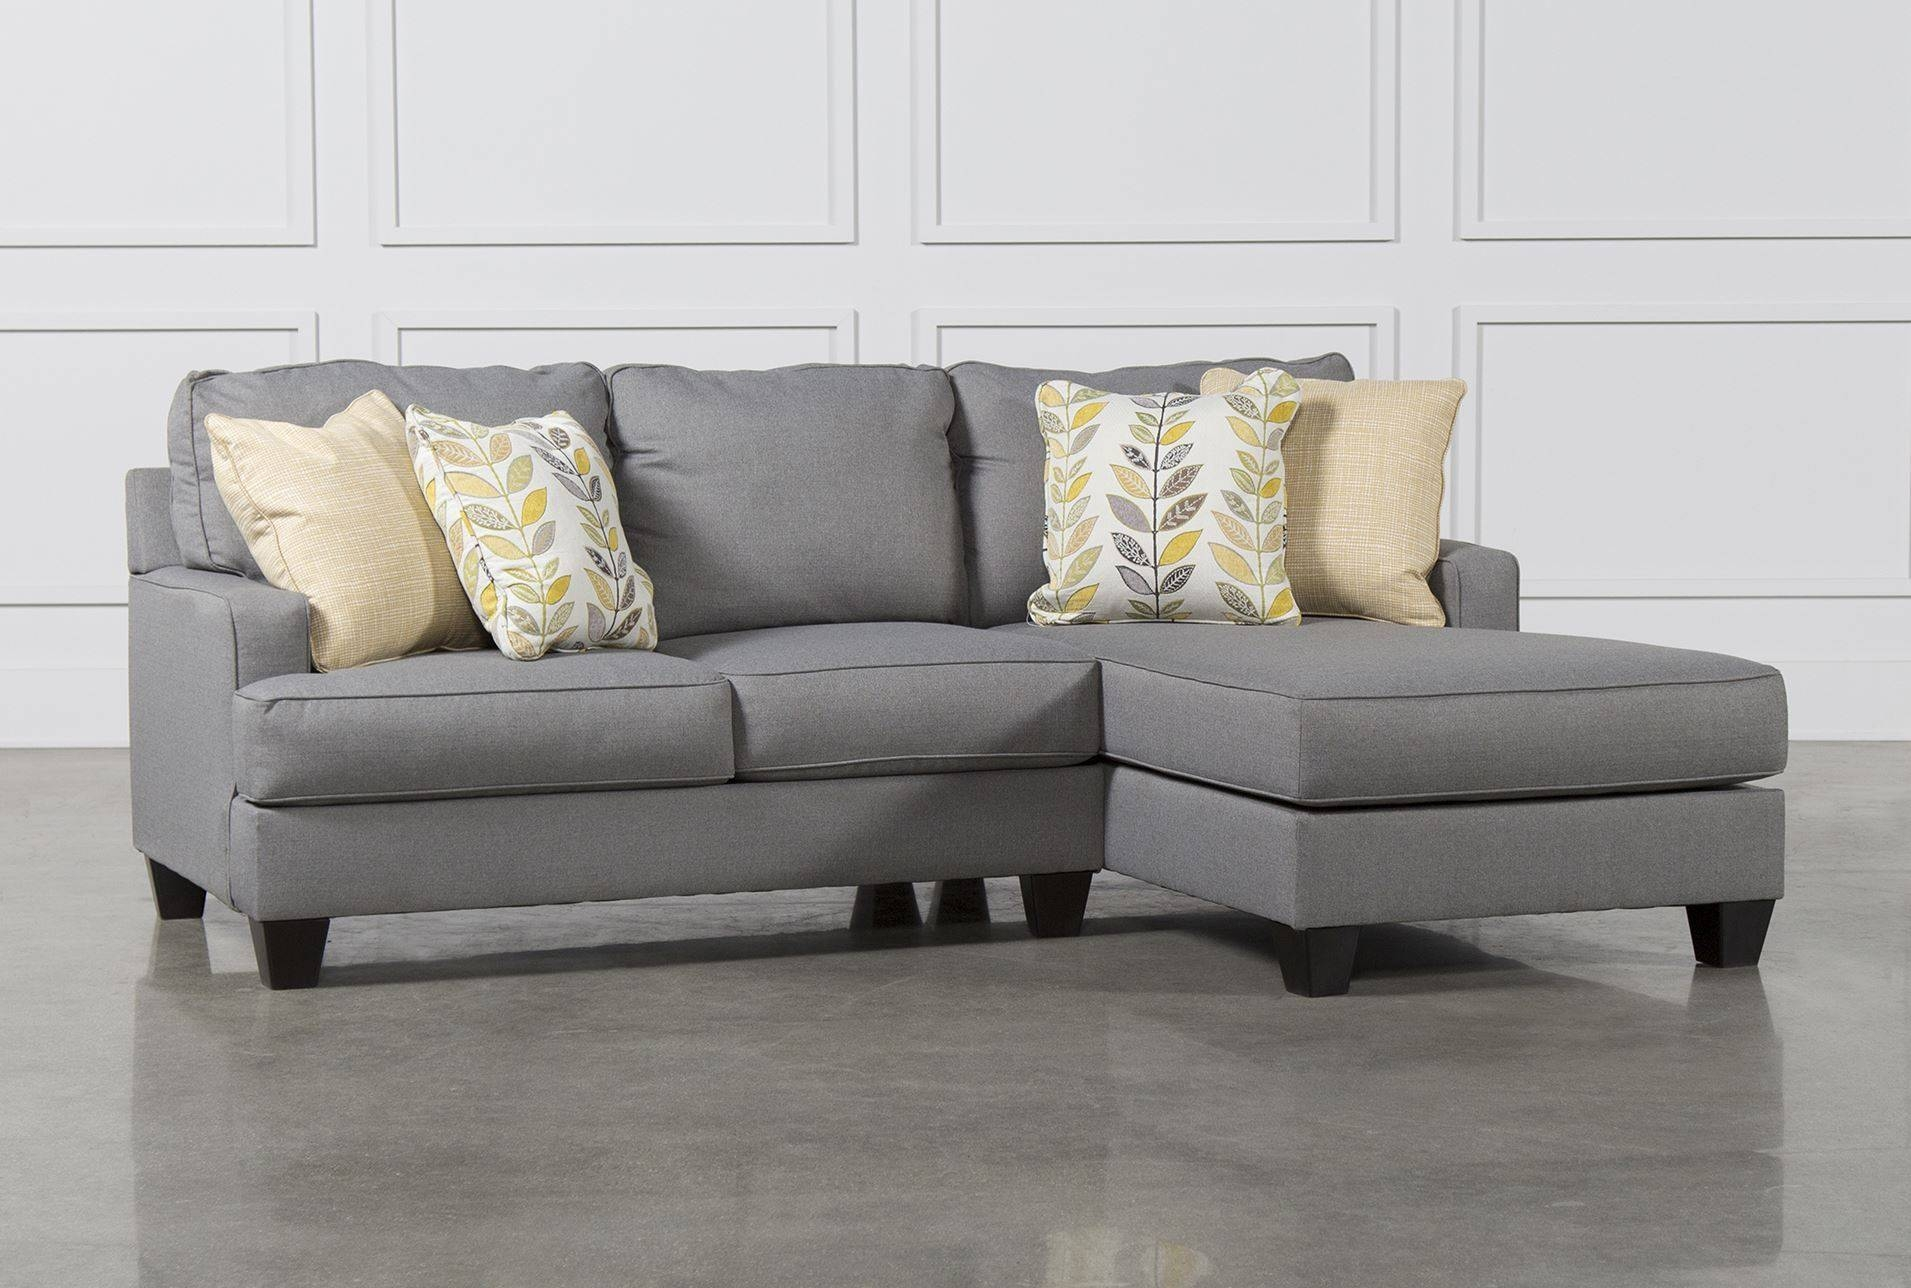 Furniture: Sectional Sofas Costco | Sectional Couches Costco in 2 Piece Sofas (Image 7 of 15)